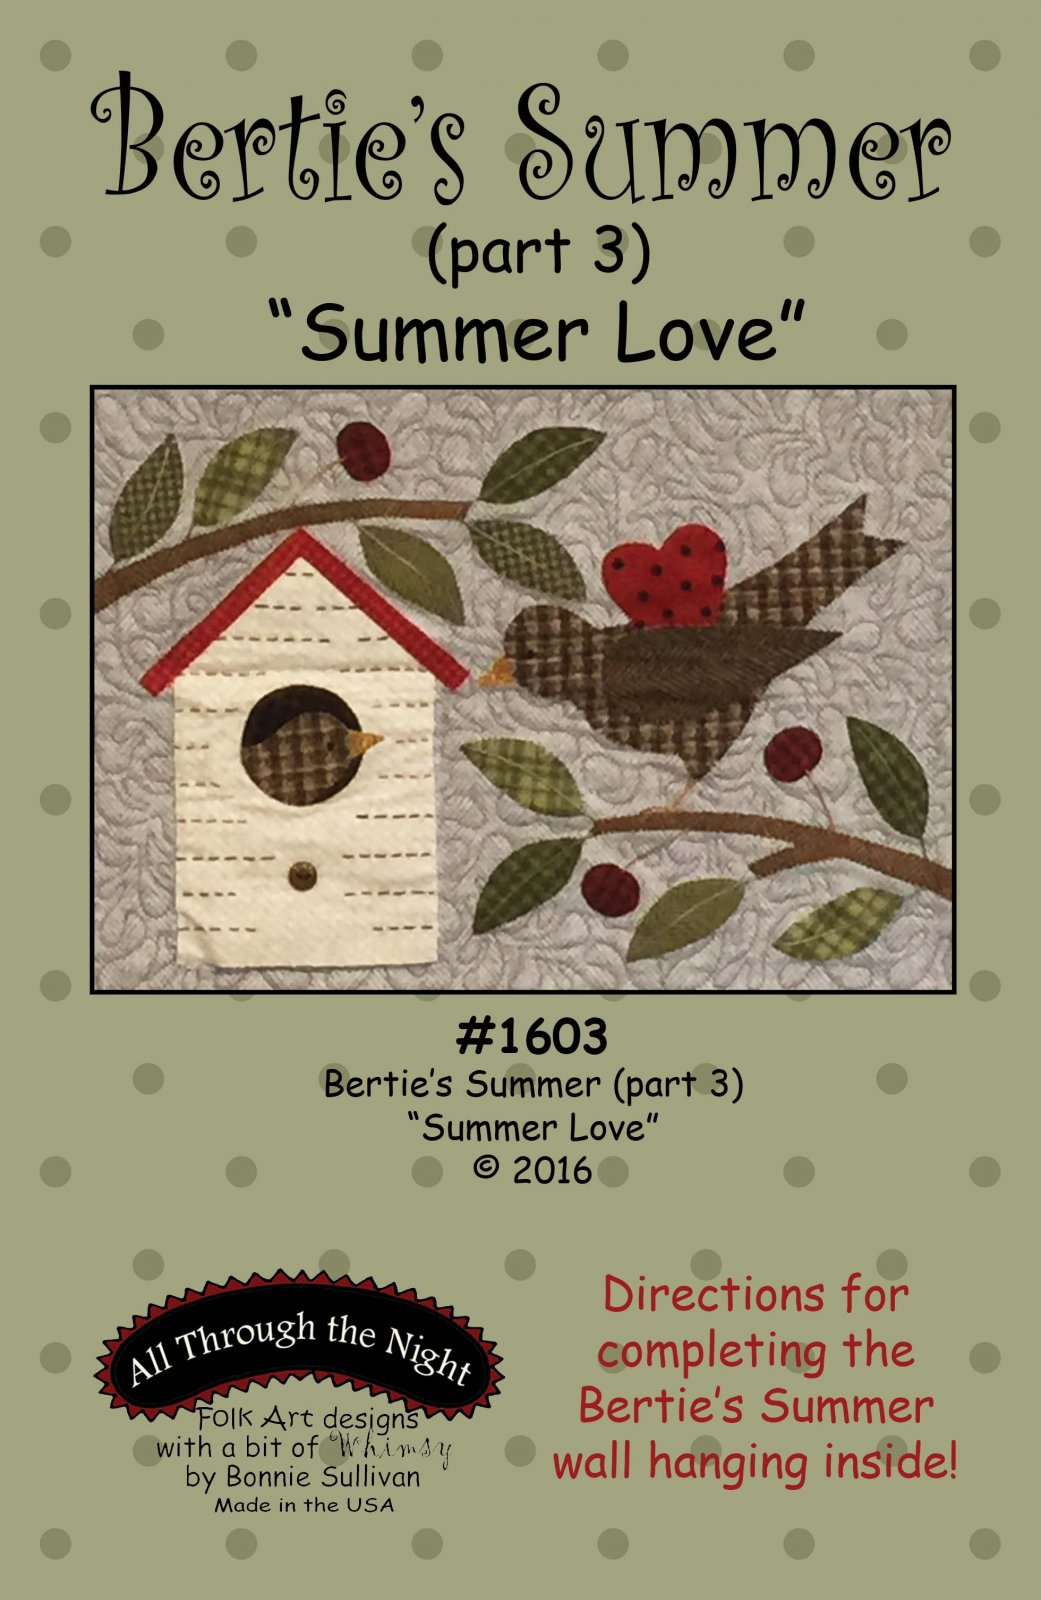 1603 Bertie's Summer Summer Love (3)